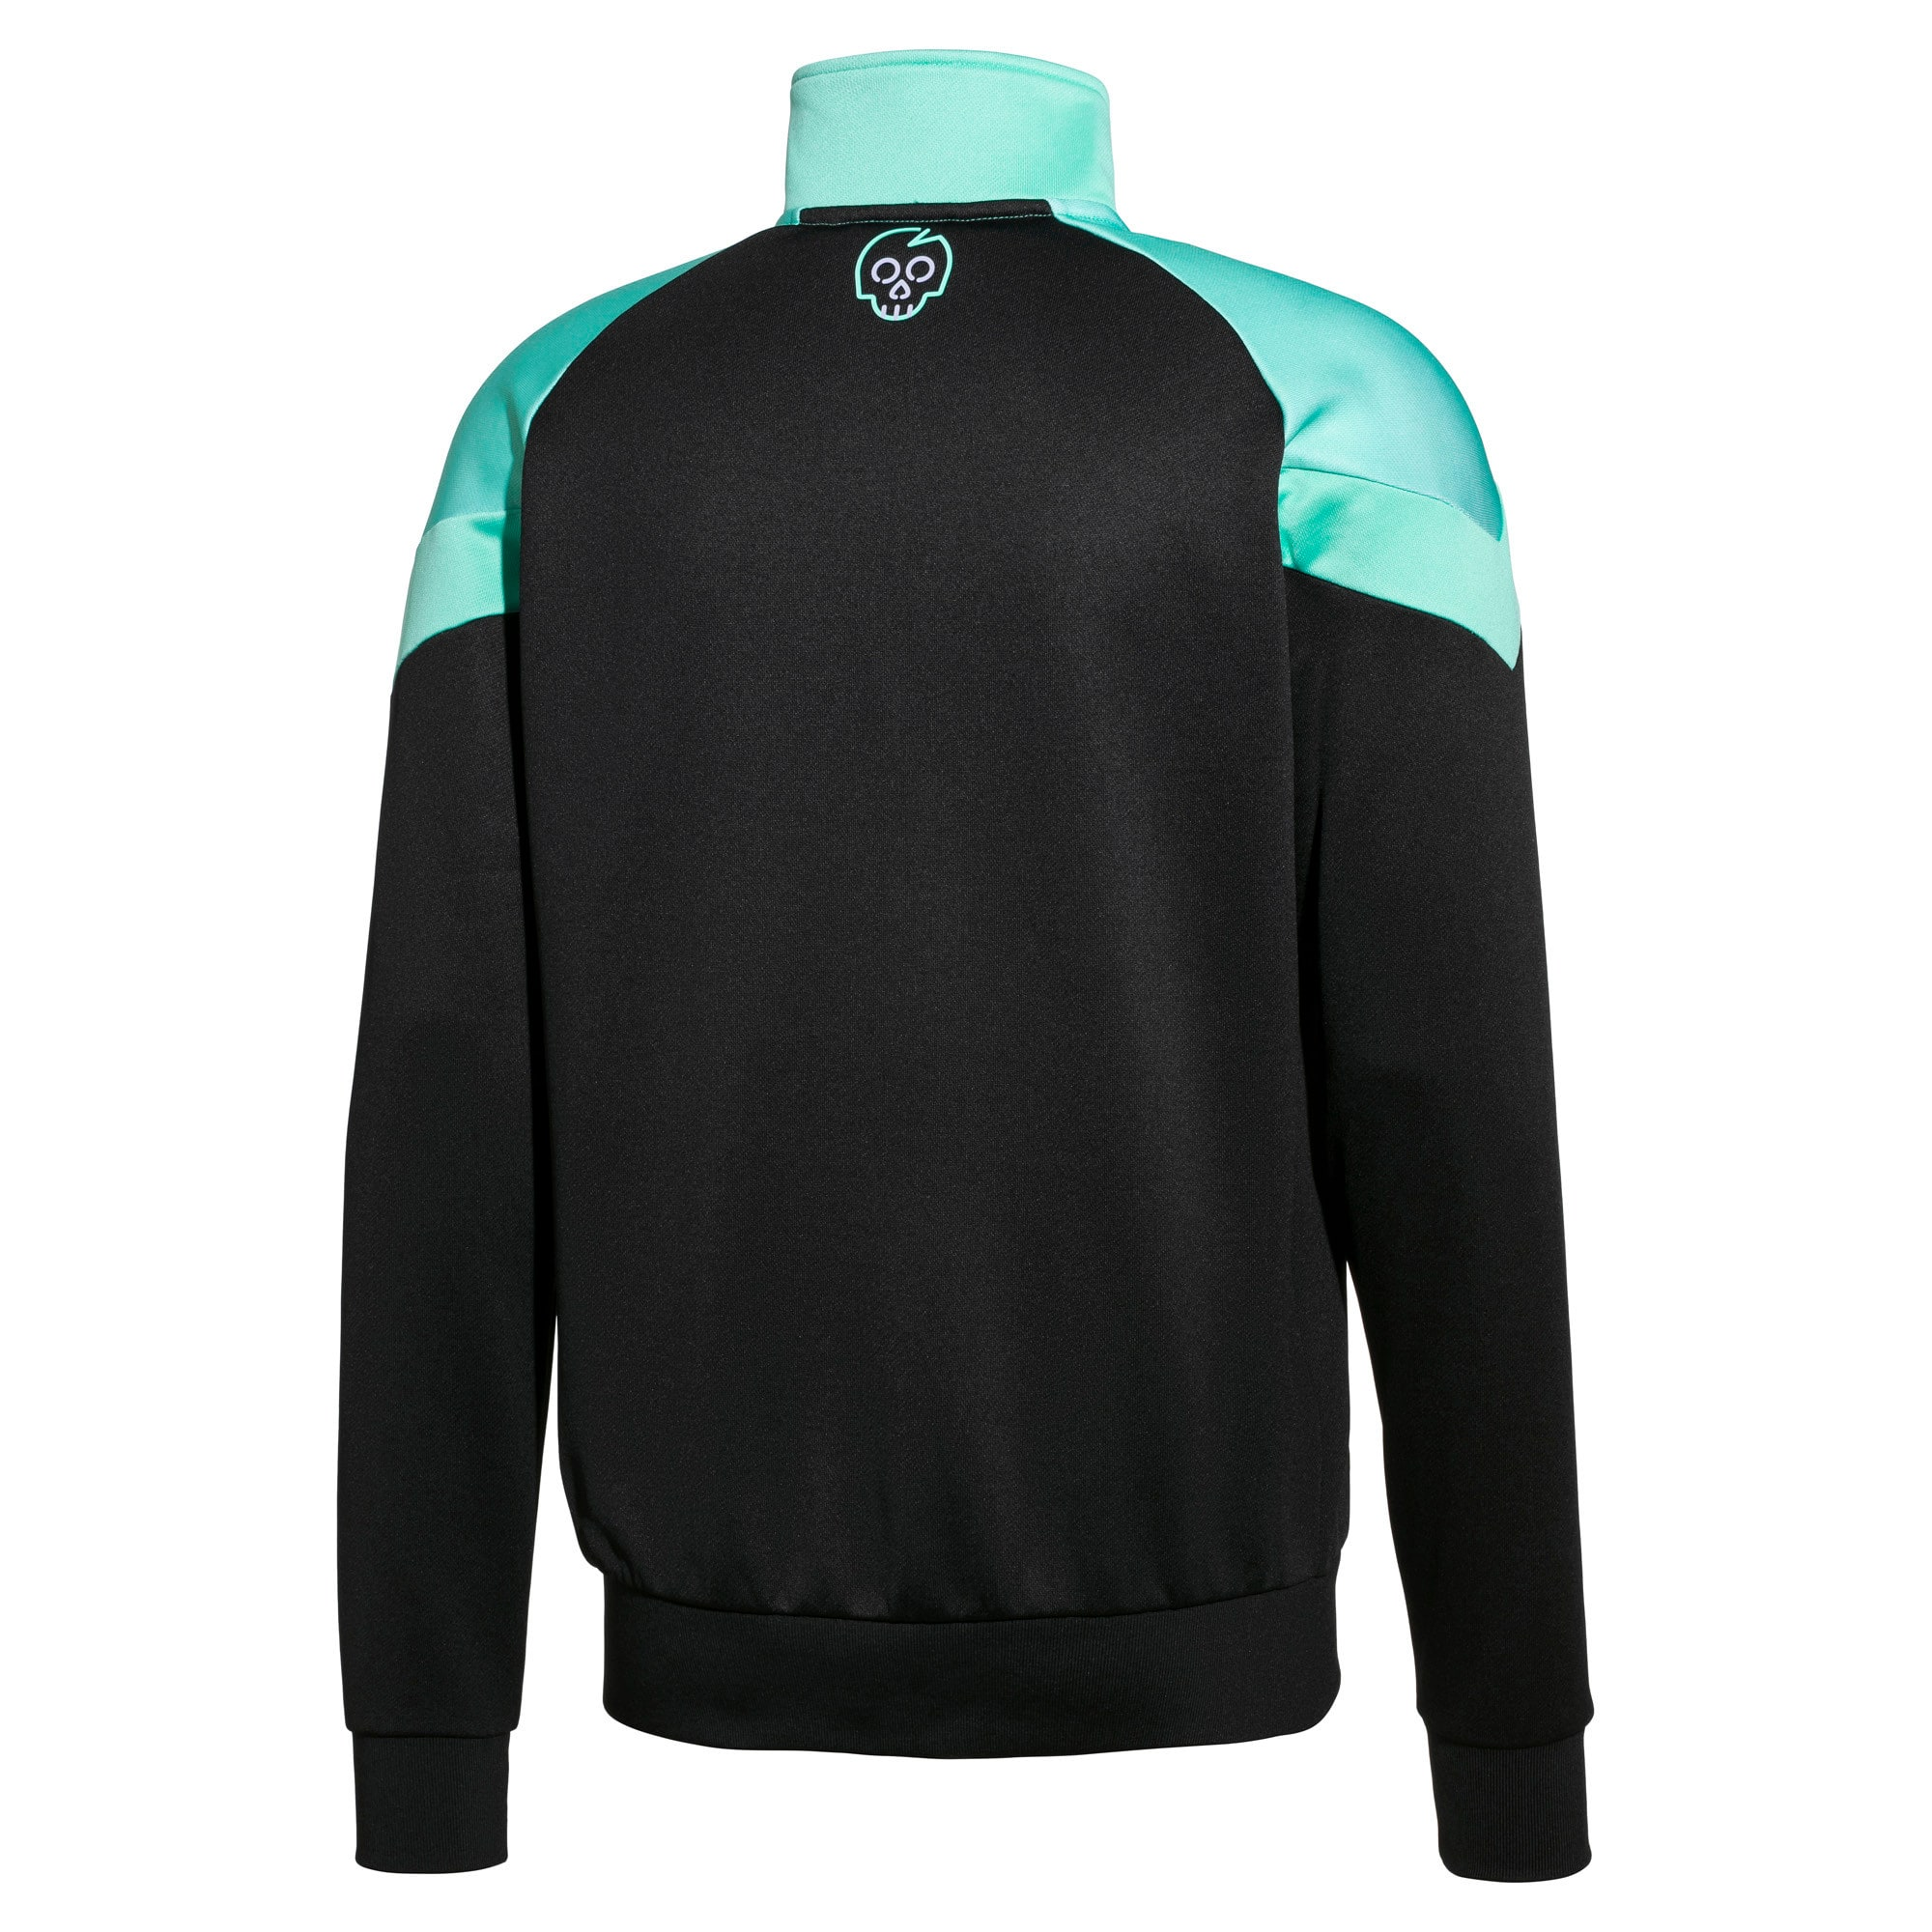 Thumbnail 2 of PUMA x MTV MCS Men's AOP Track Top, Puma Black, medium